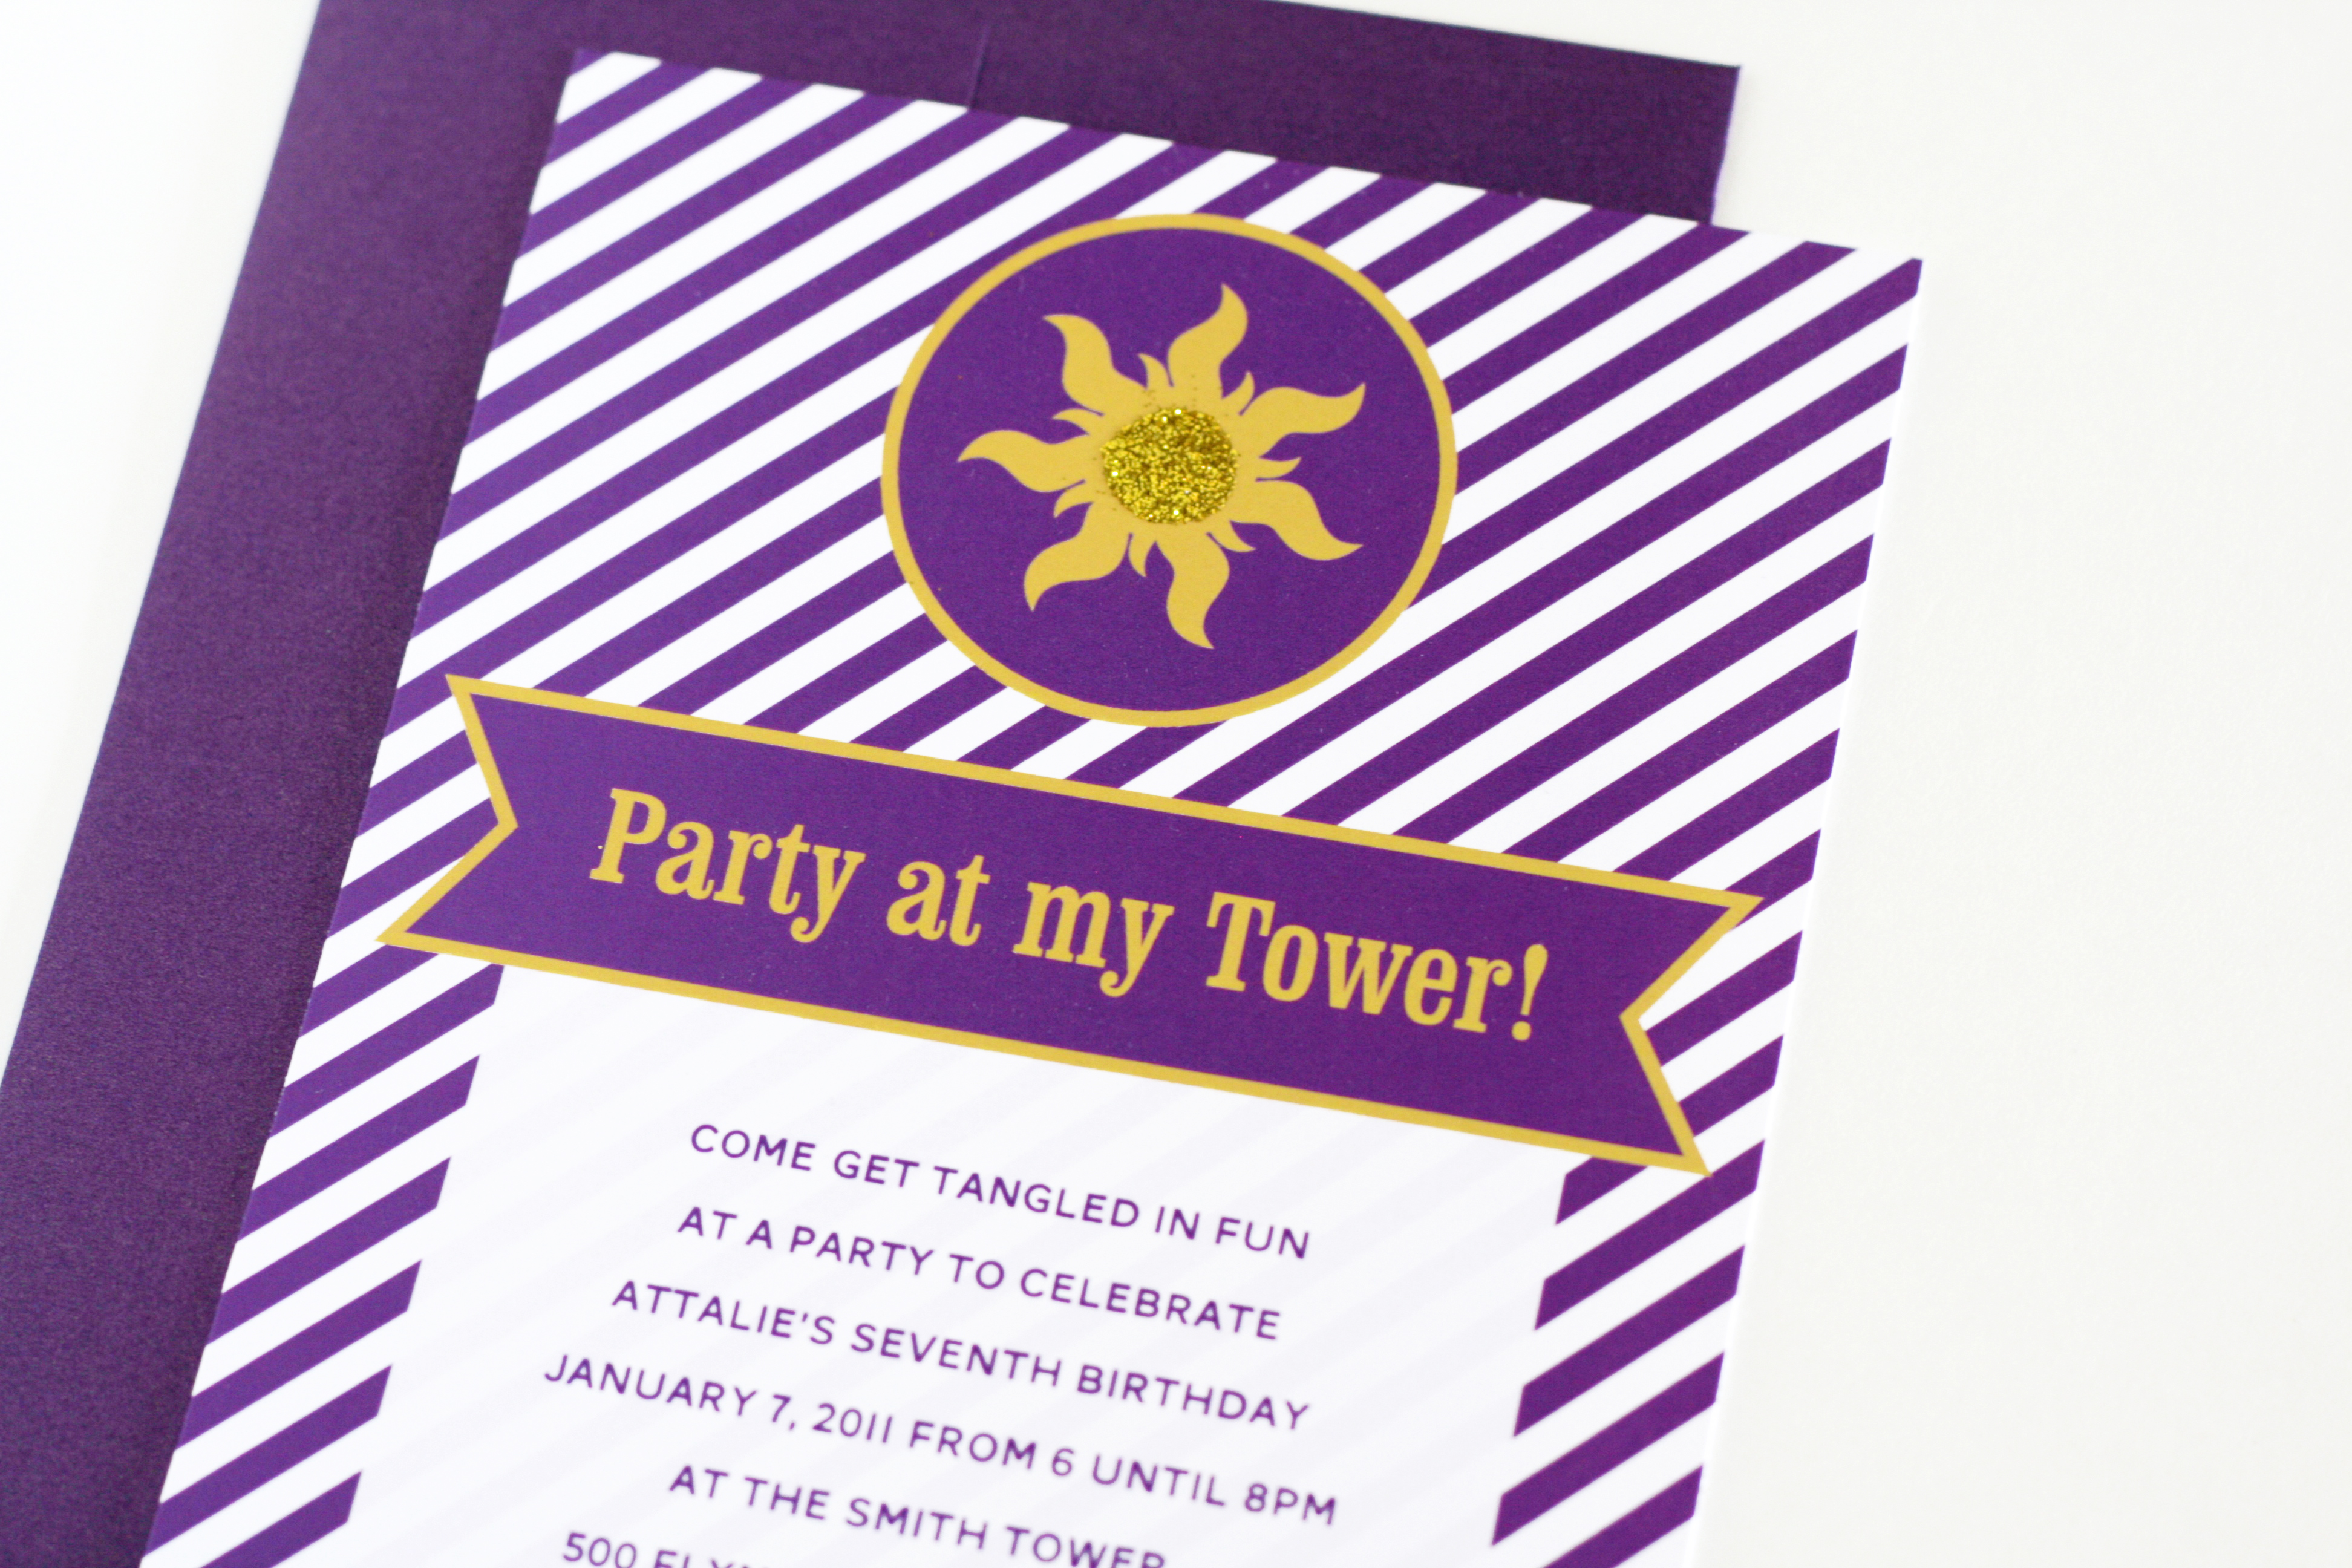 Easy Tangled Party Invites